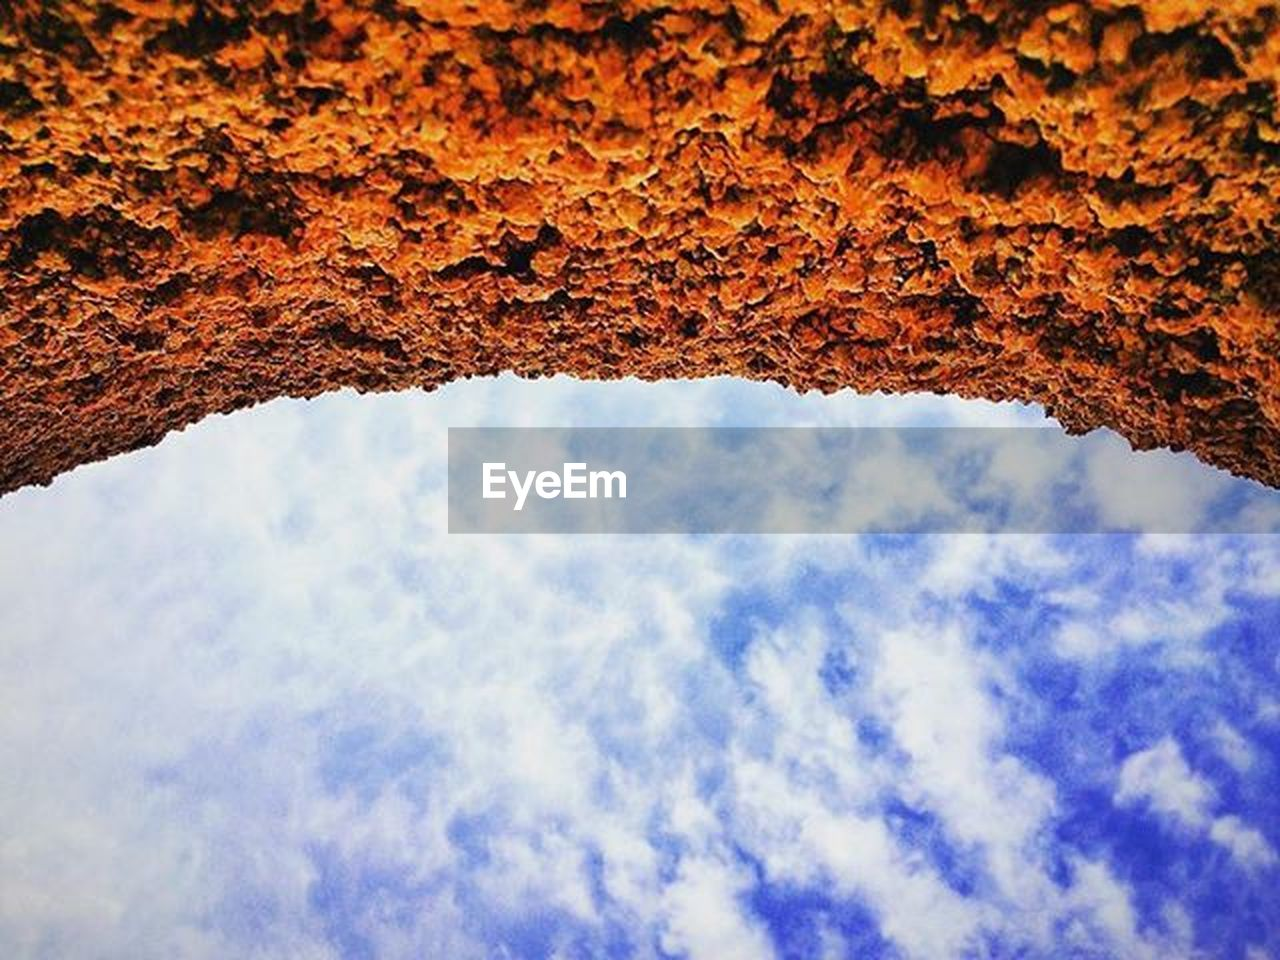 low angle view, nature, sky, beauty in nature, day, no people, outdoors, textured, backgrounds, cloud - sky, tree, close-up